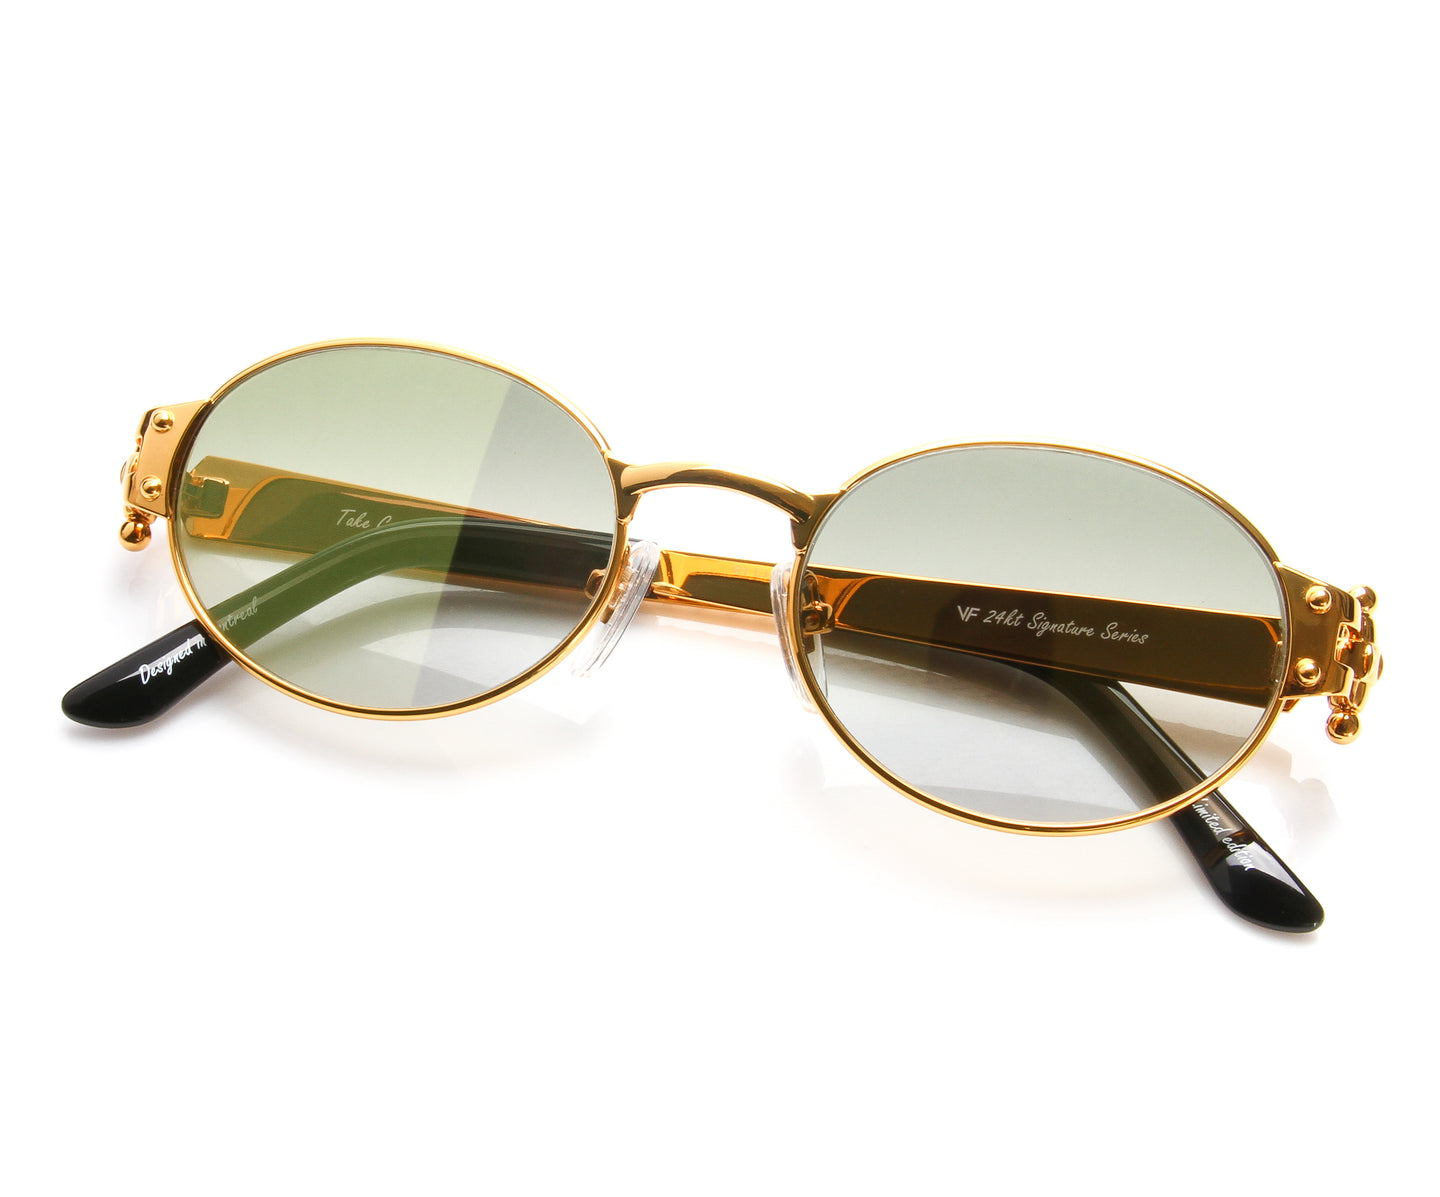 VF 2000 24KT Gold Masterpiece (Moss Green), VF Masterpiece , glasses frames, eyeglasses online, eyeglass frames, mens glasses, womens glasses, buy glasses online, designer eyeglasses, vintage sunglasses, retro sunglasses, vintage glasses, sunglass, eyeglass, glasses, lens, vintage frames company, vf